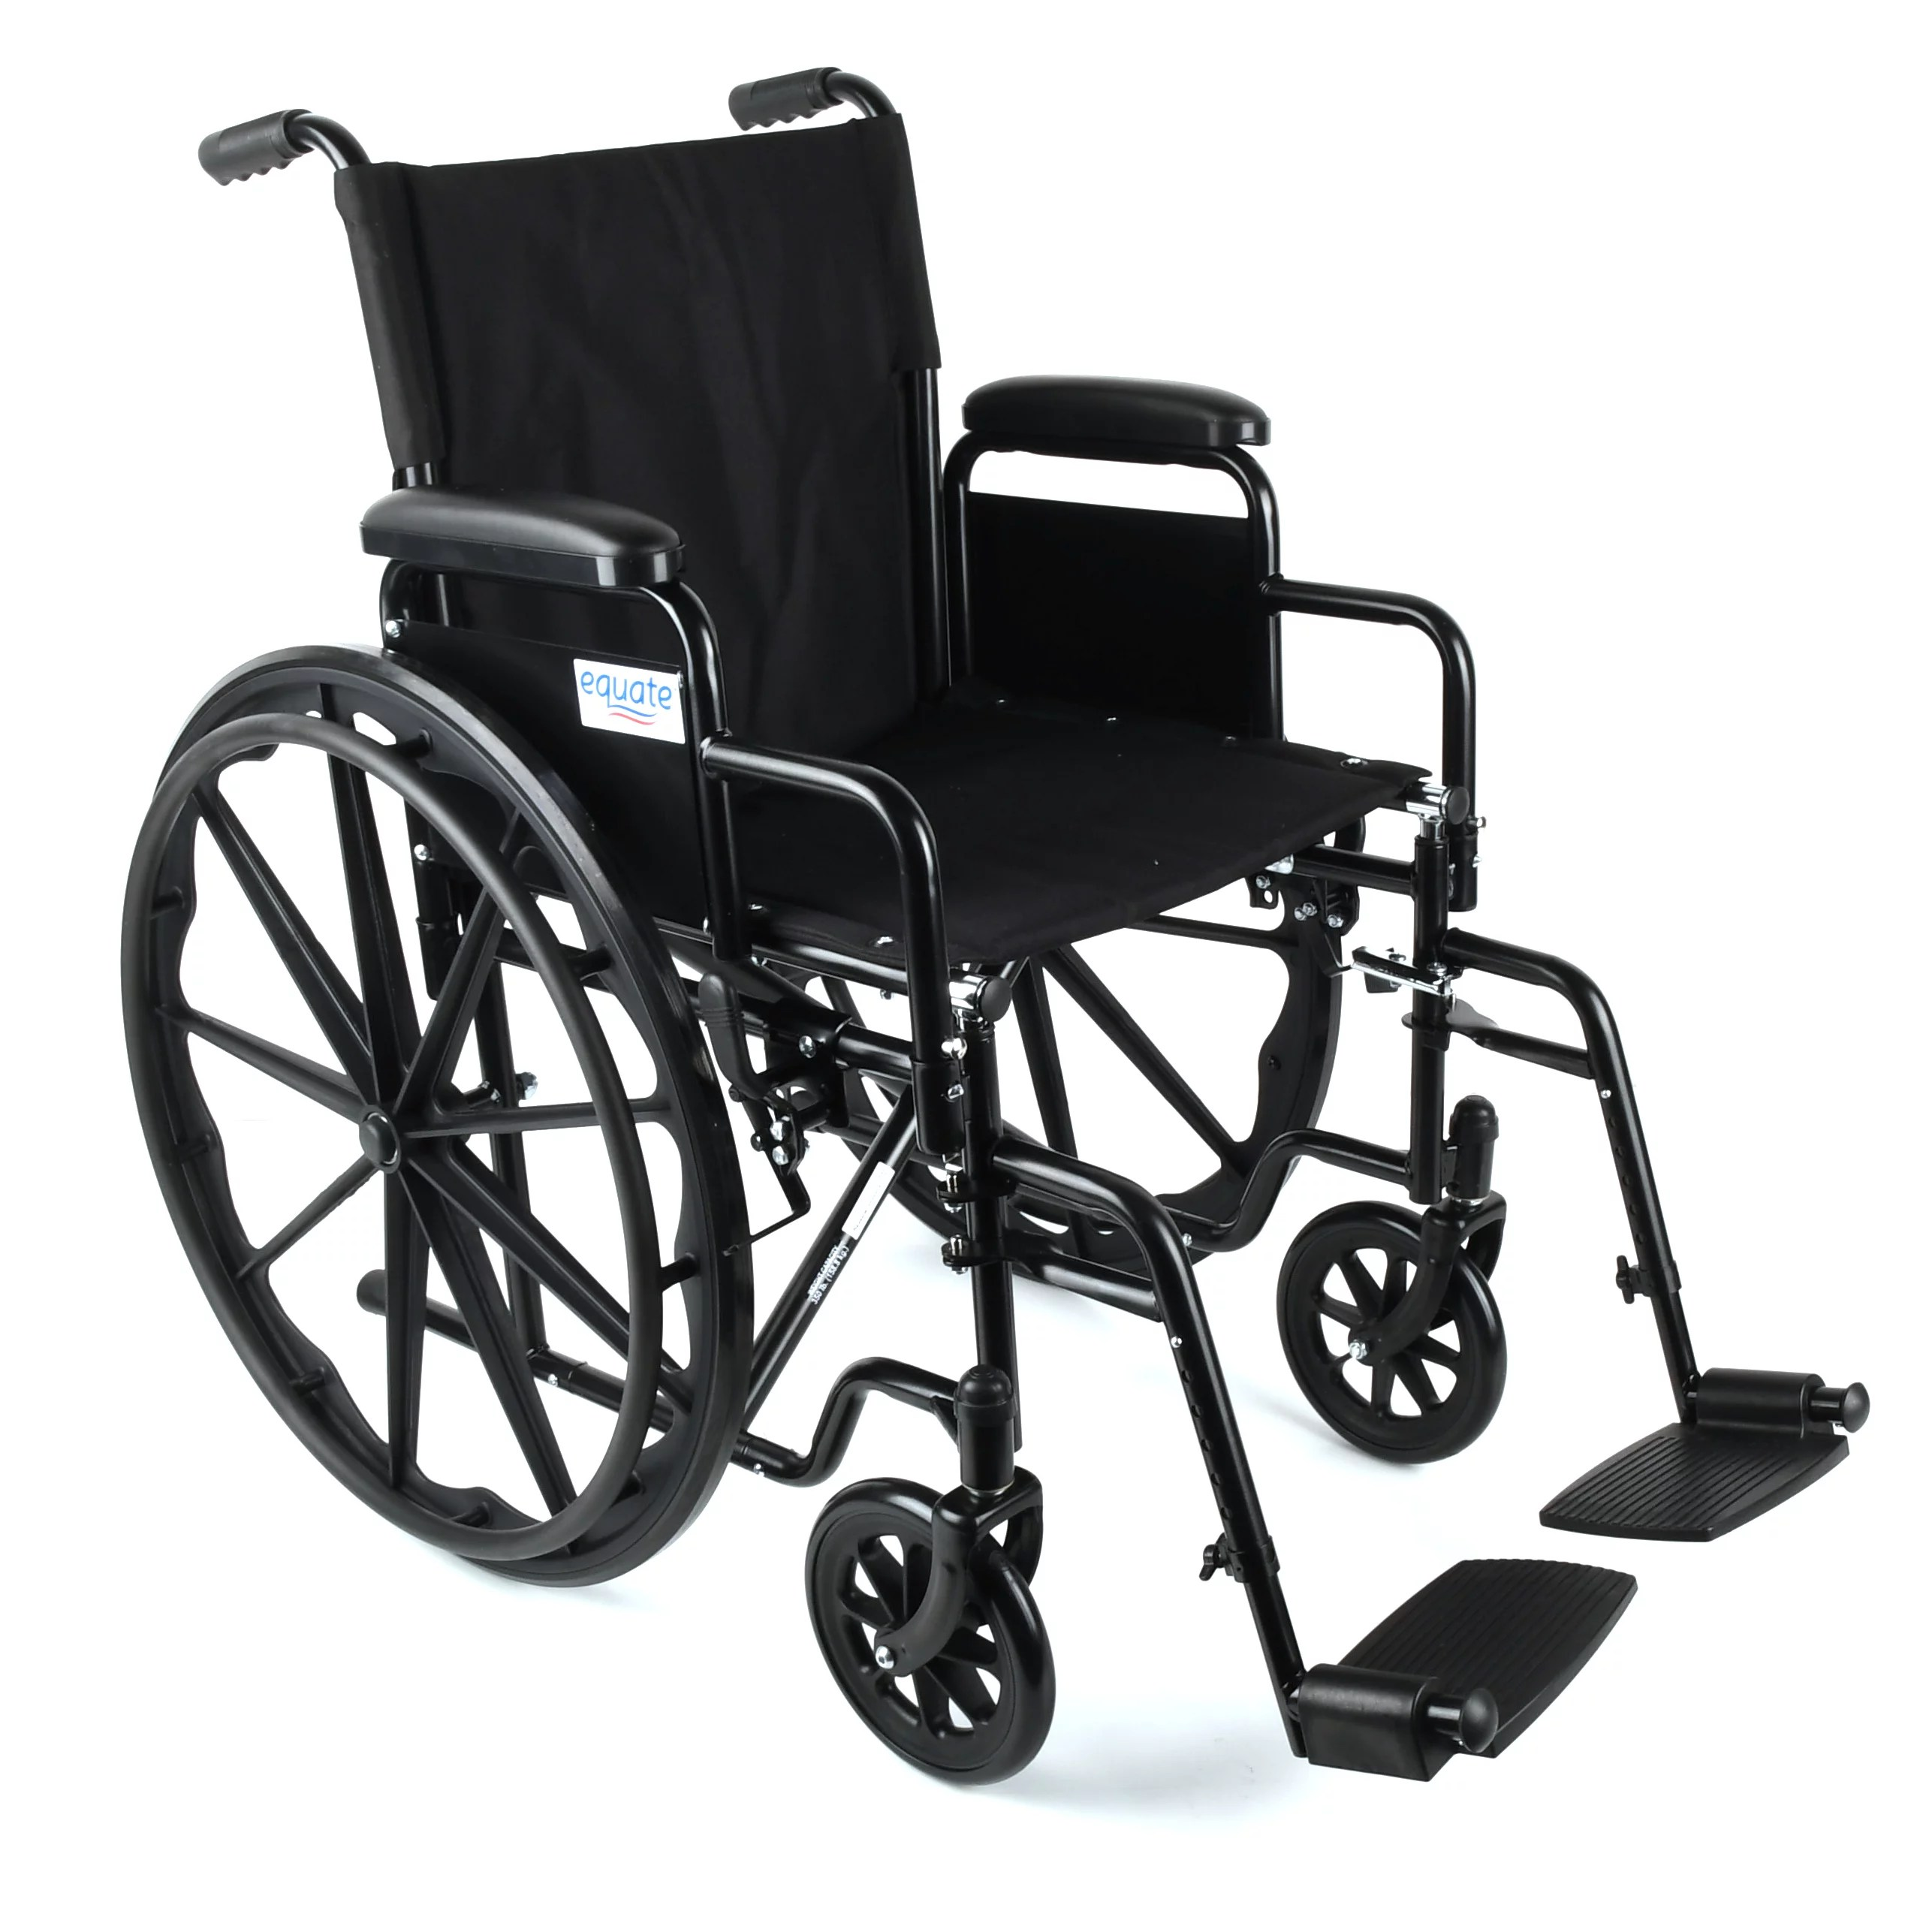 transport chairs at walmart cleo pedicure chair manual equate wheelchair black